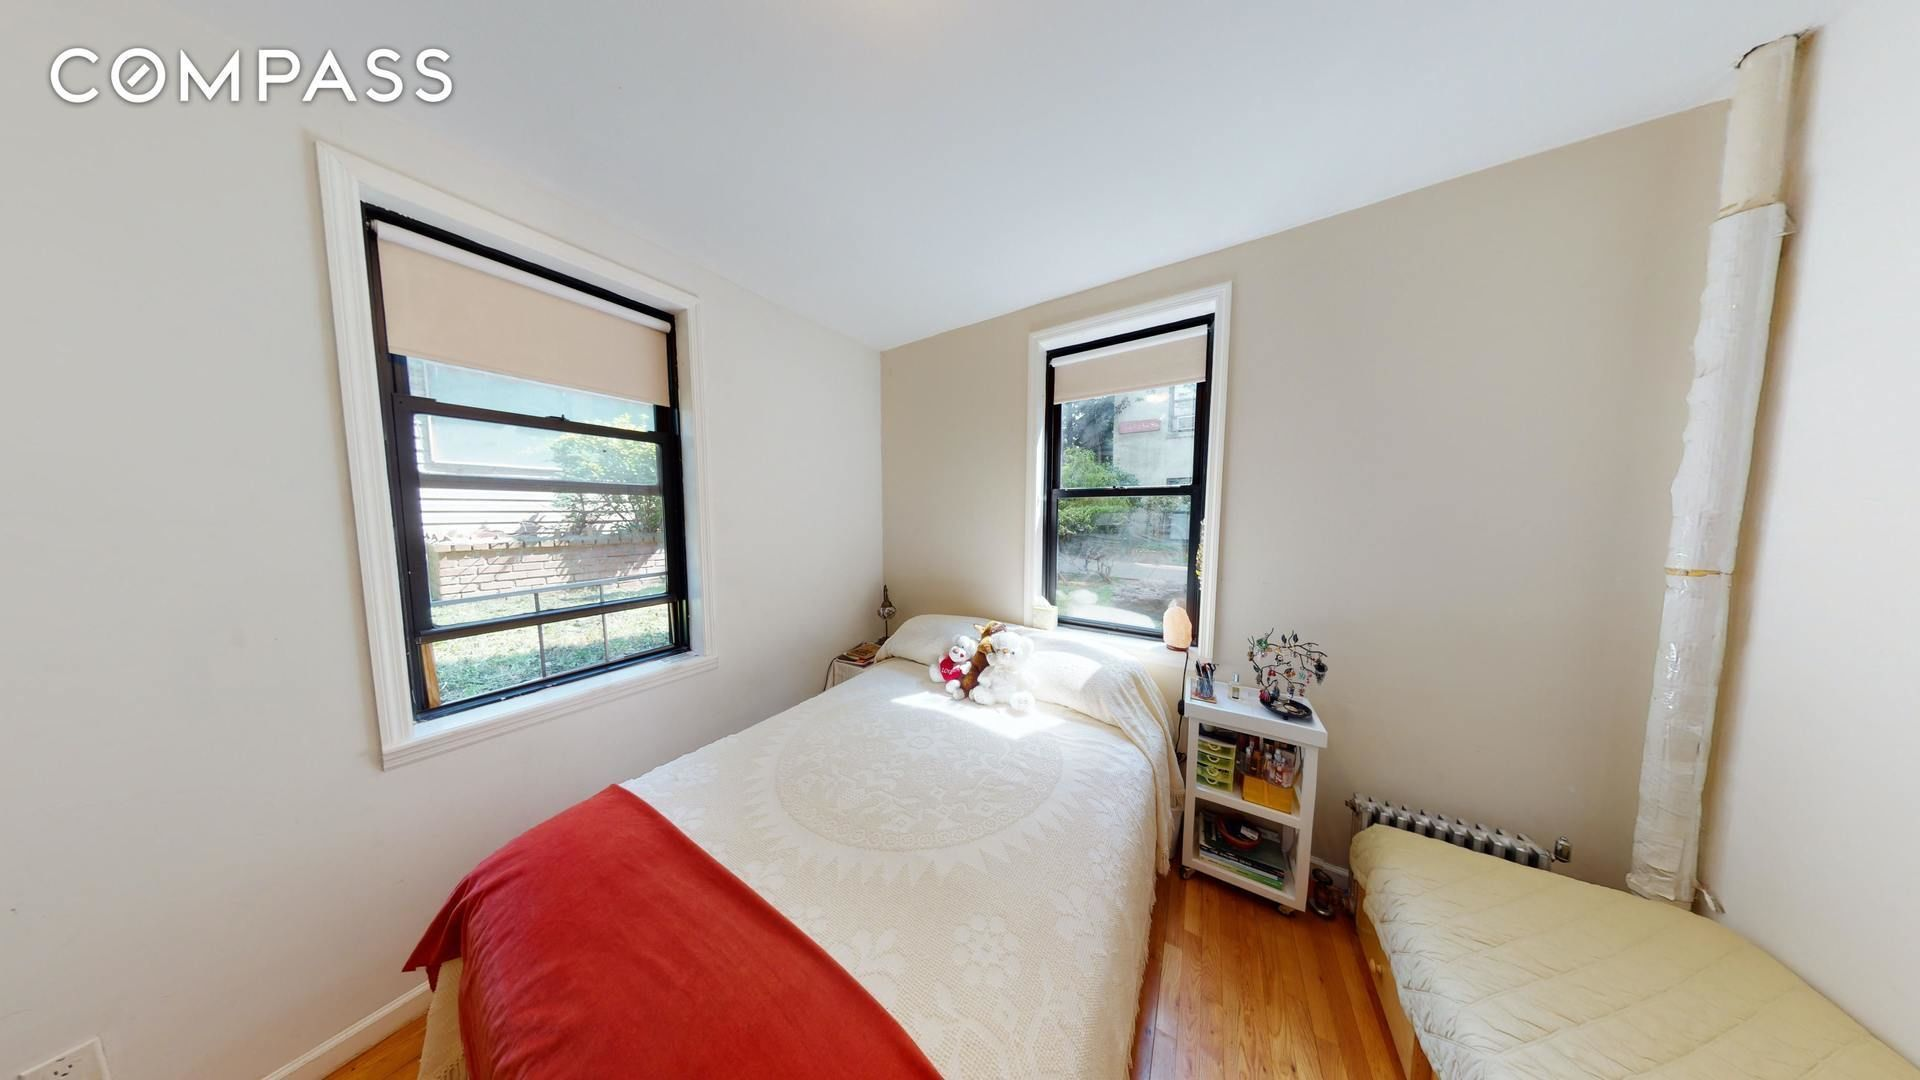 Apartment for sale at 21-05 33rd Street, Apt 1-A